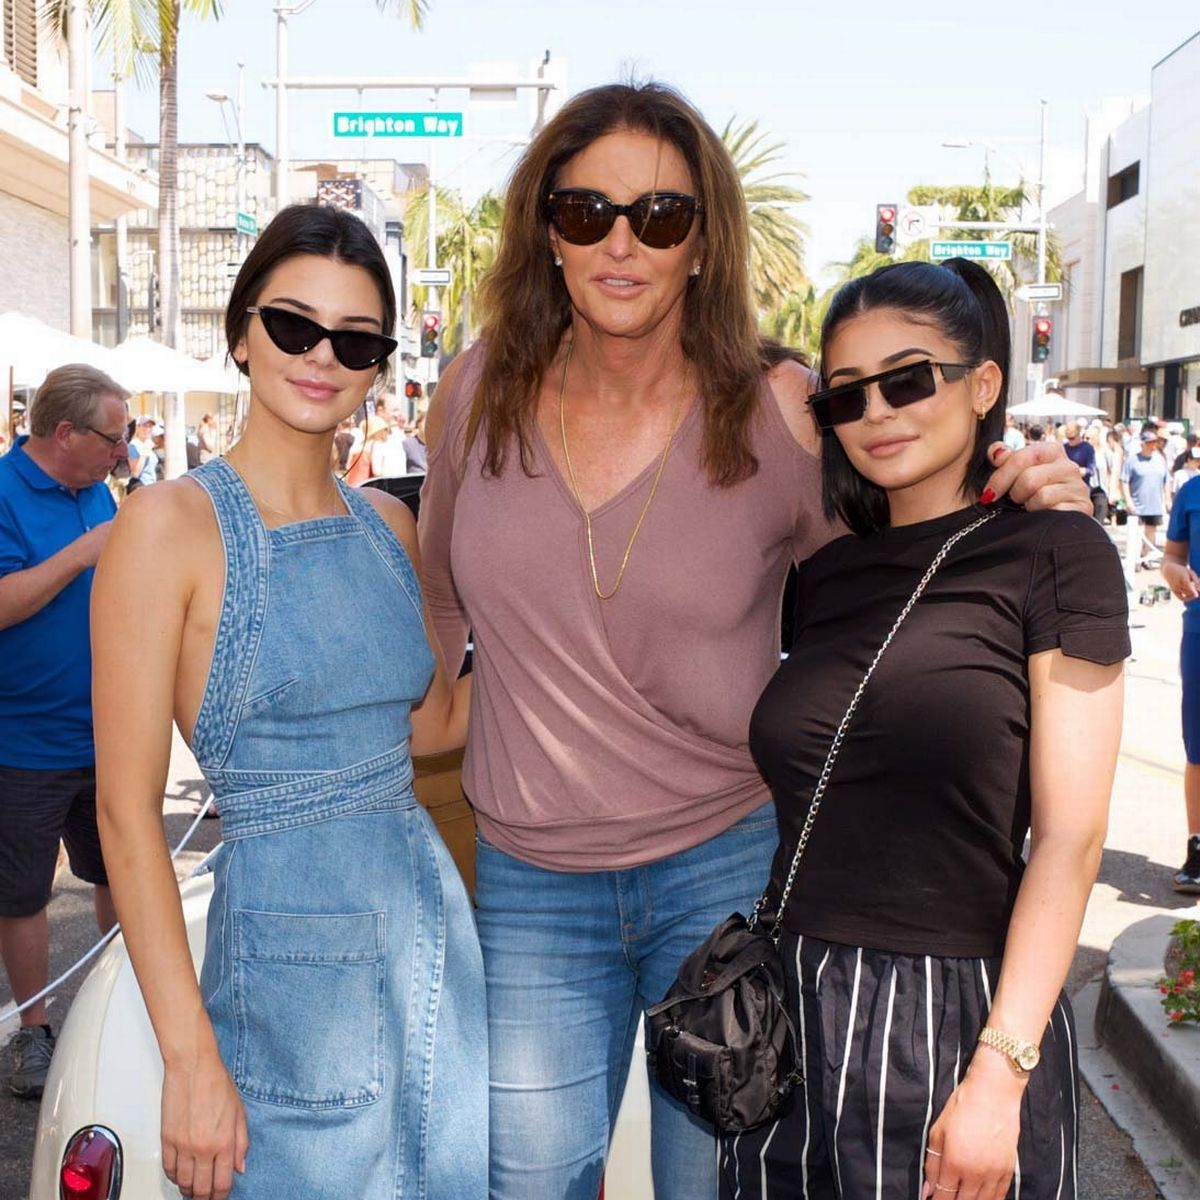 Caitlyn Jenner Topless photo 10